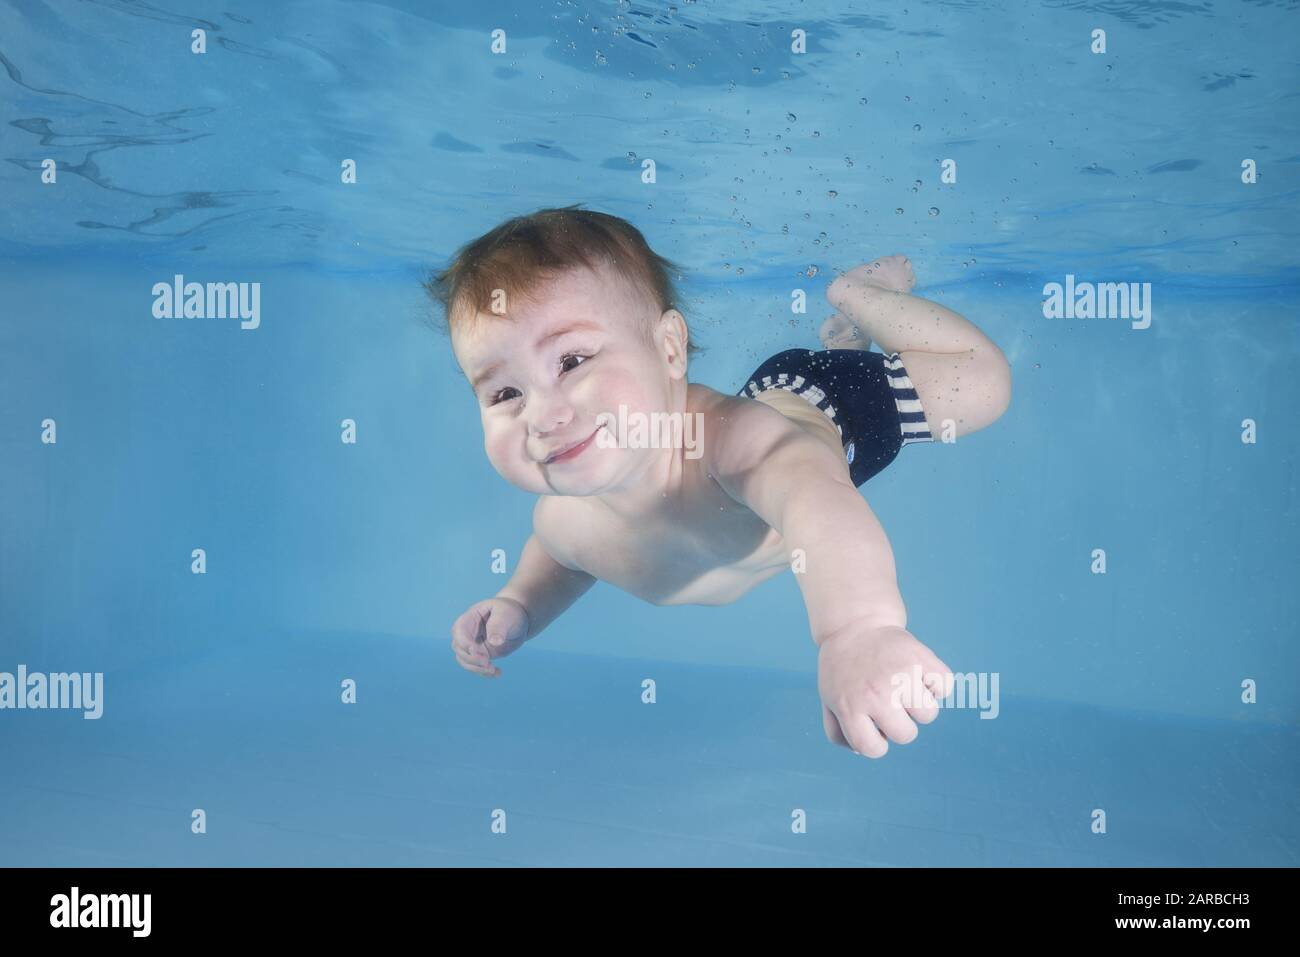 Little baby boy learns to swims underwater. Baby swimming underwater in the pool. Healthy family lifestyle and children water sports activity. Child d Stock Photo